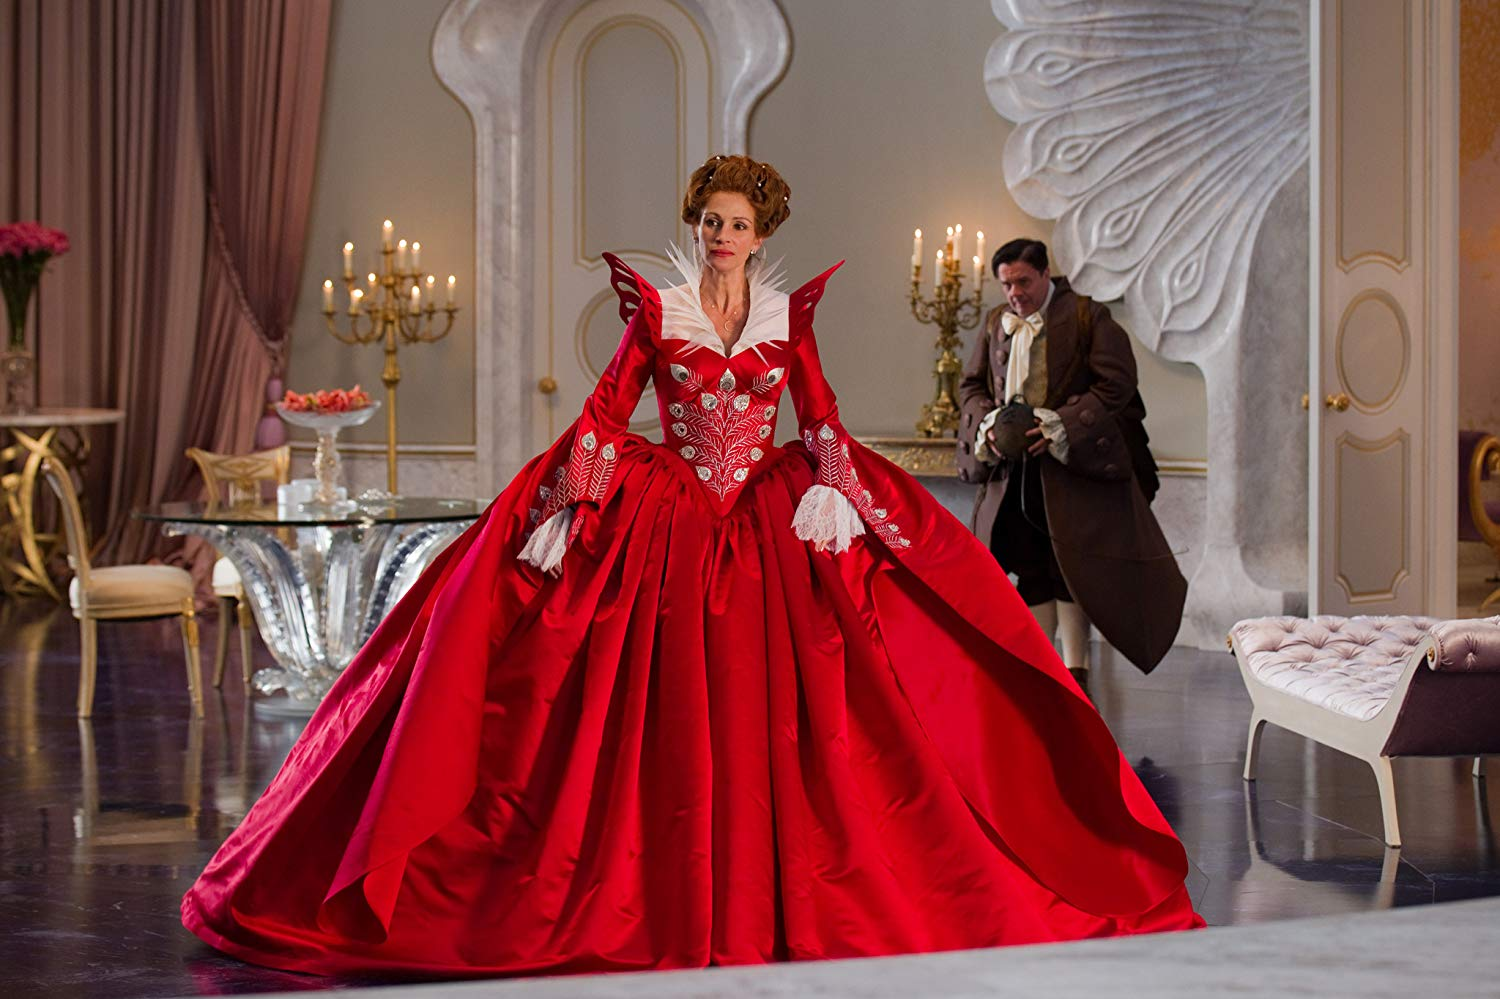 Julia Roberts as The Queen in Mirror Mirror (2012)